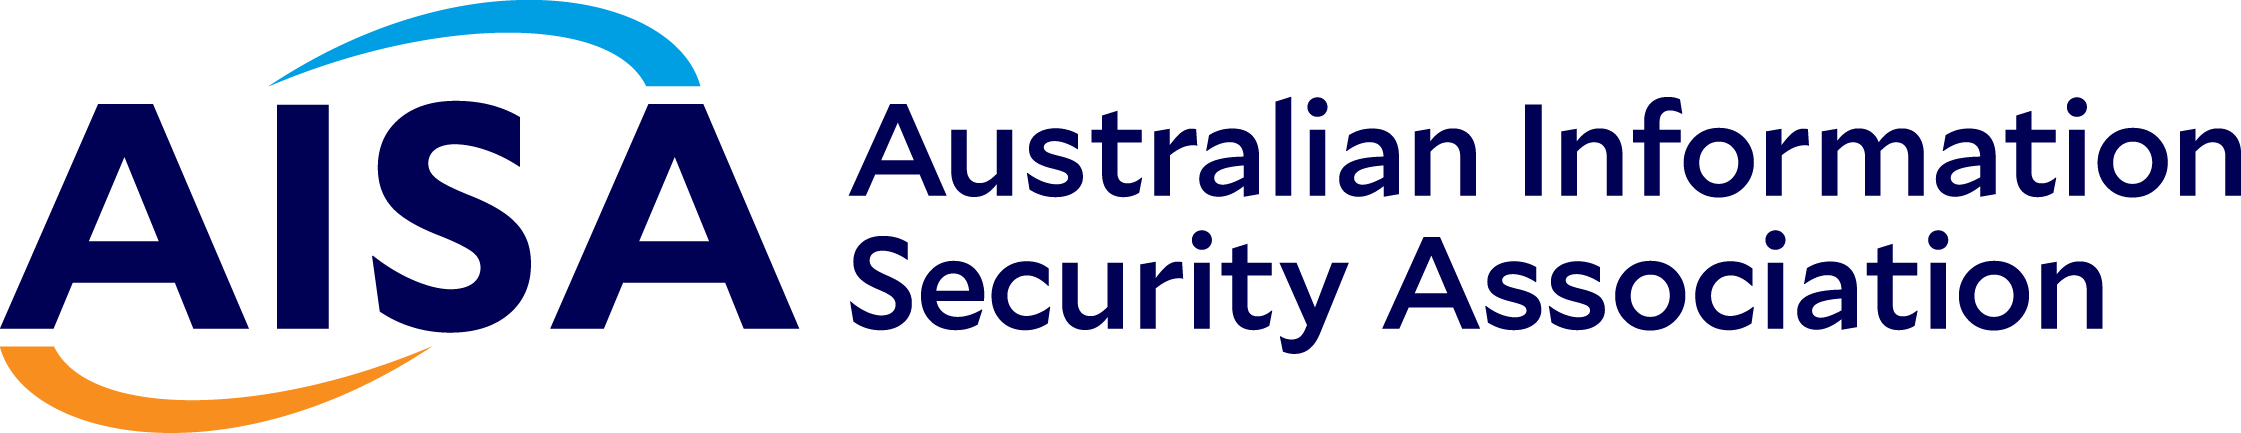 Logo AISA (Australian Information Security Association)